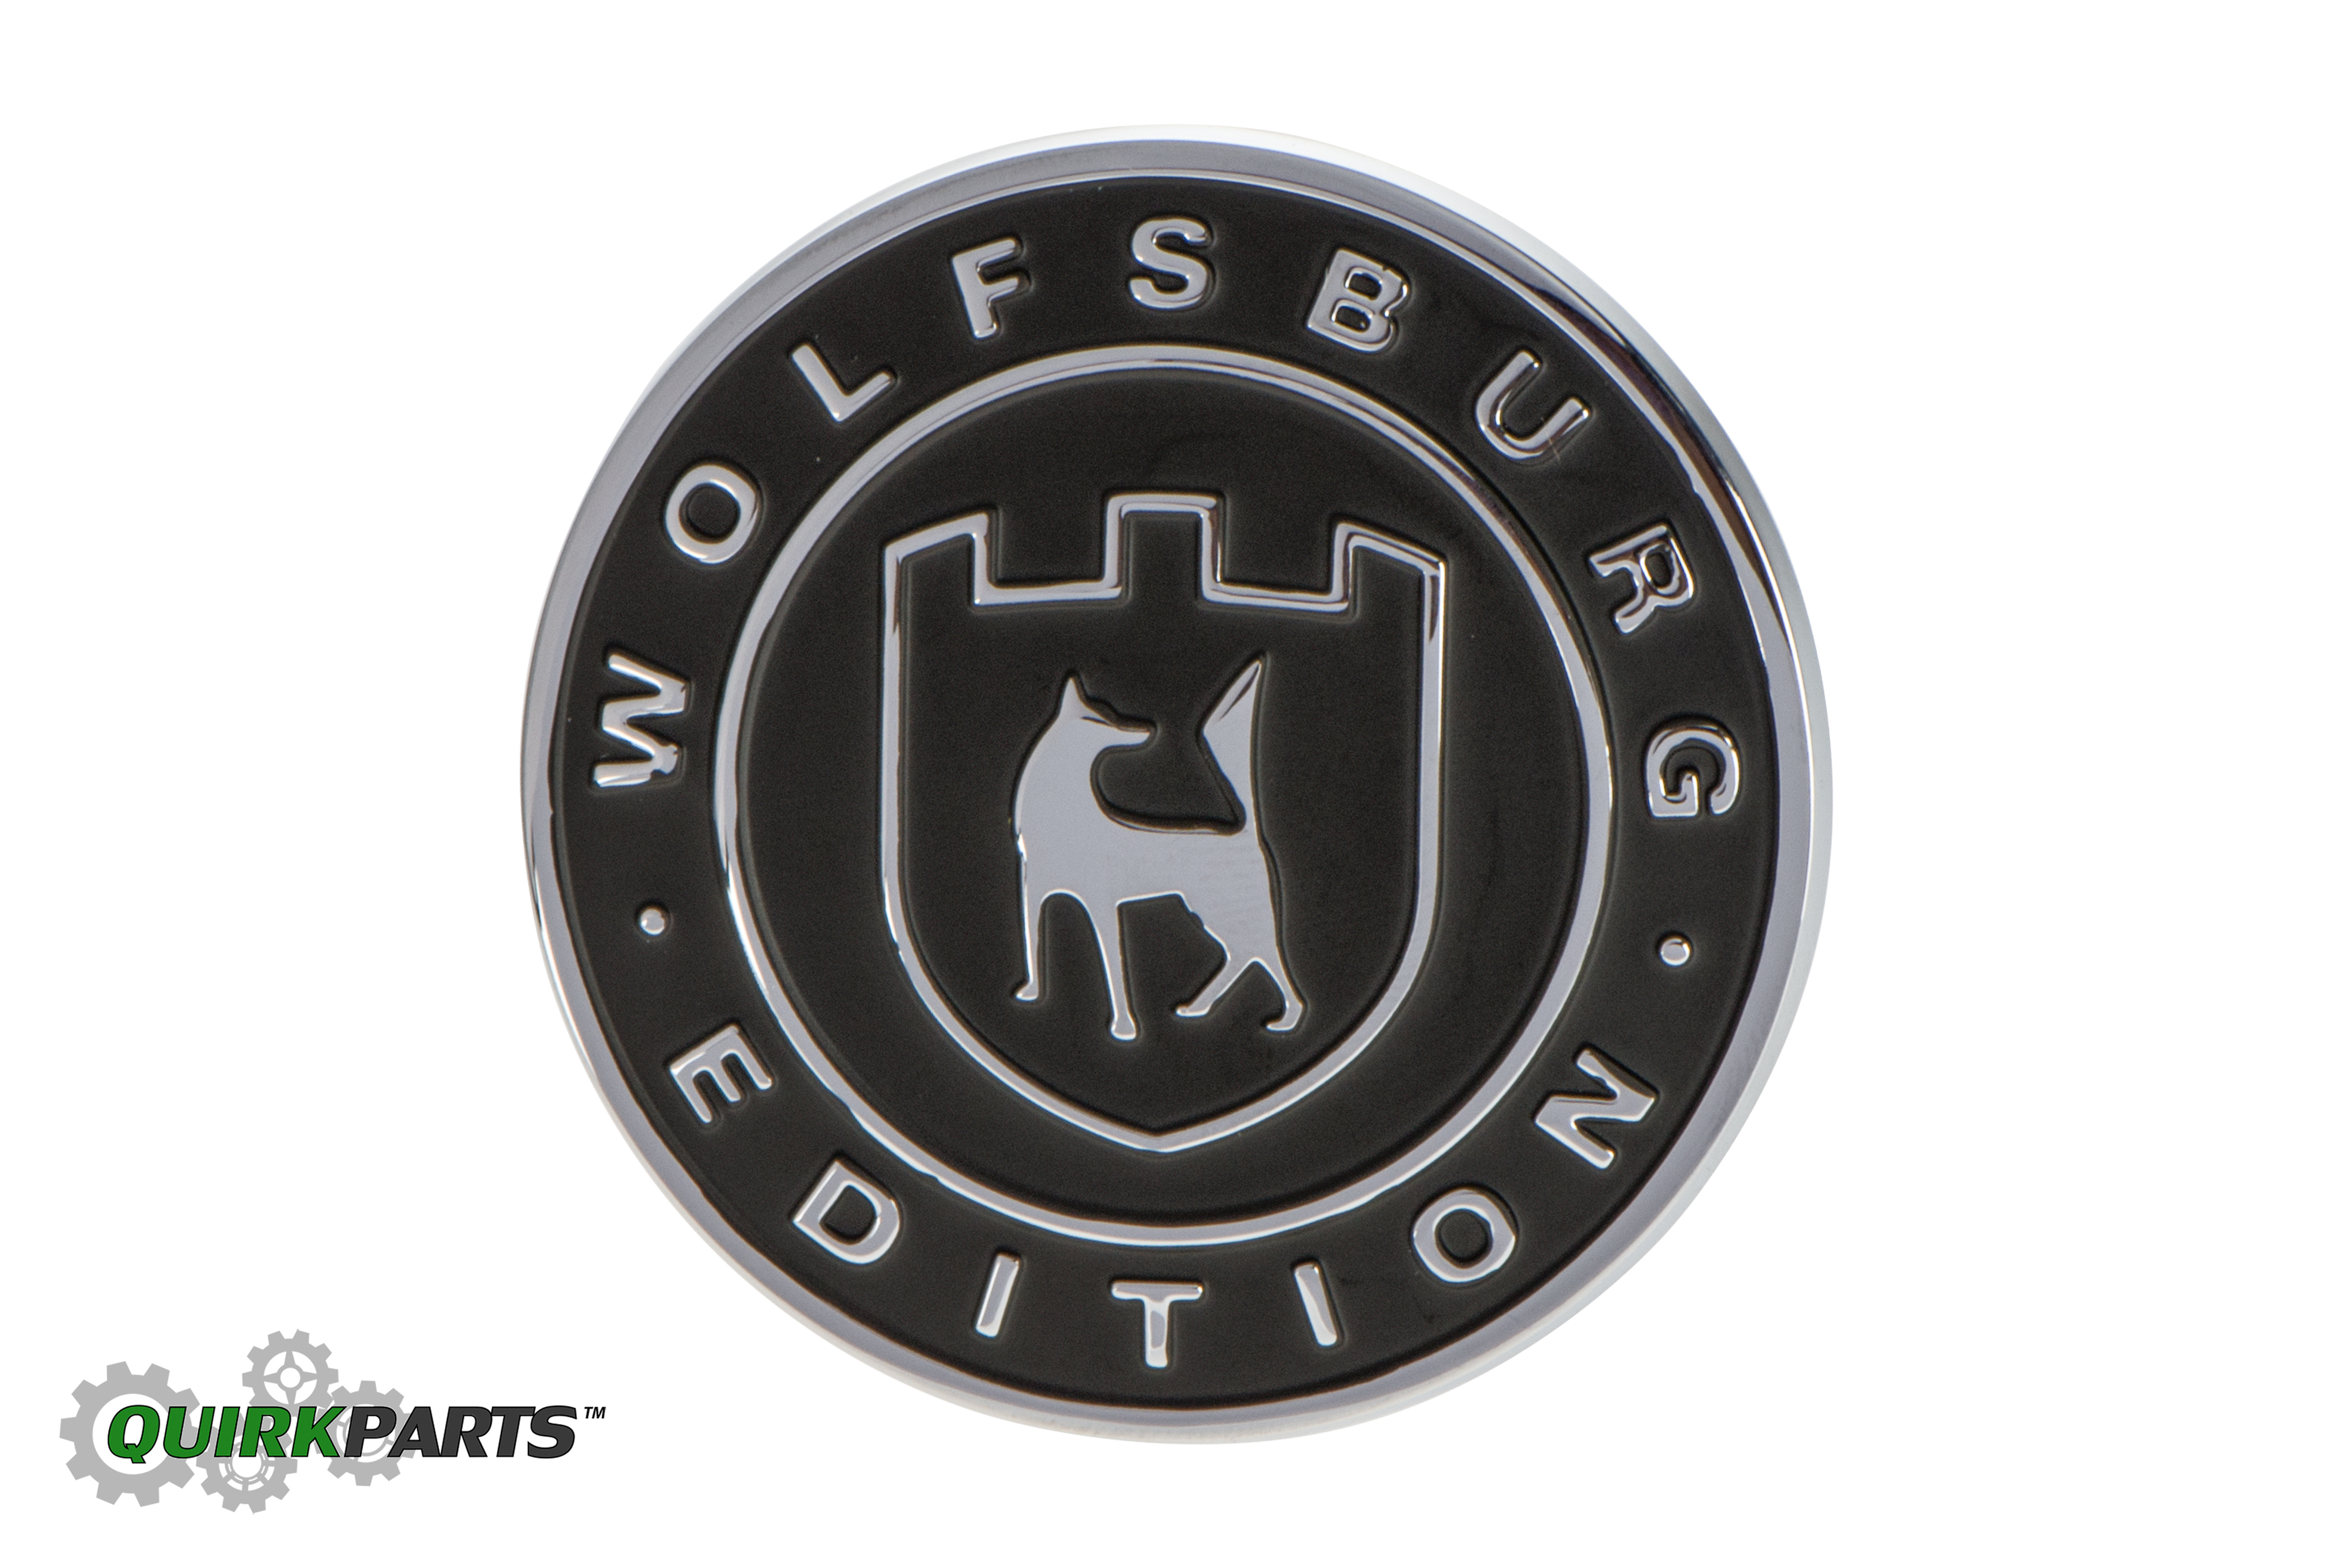 OEM NEW VW Volkswagen WOLFSBURG EDITION Badge Emblem ...